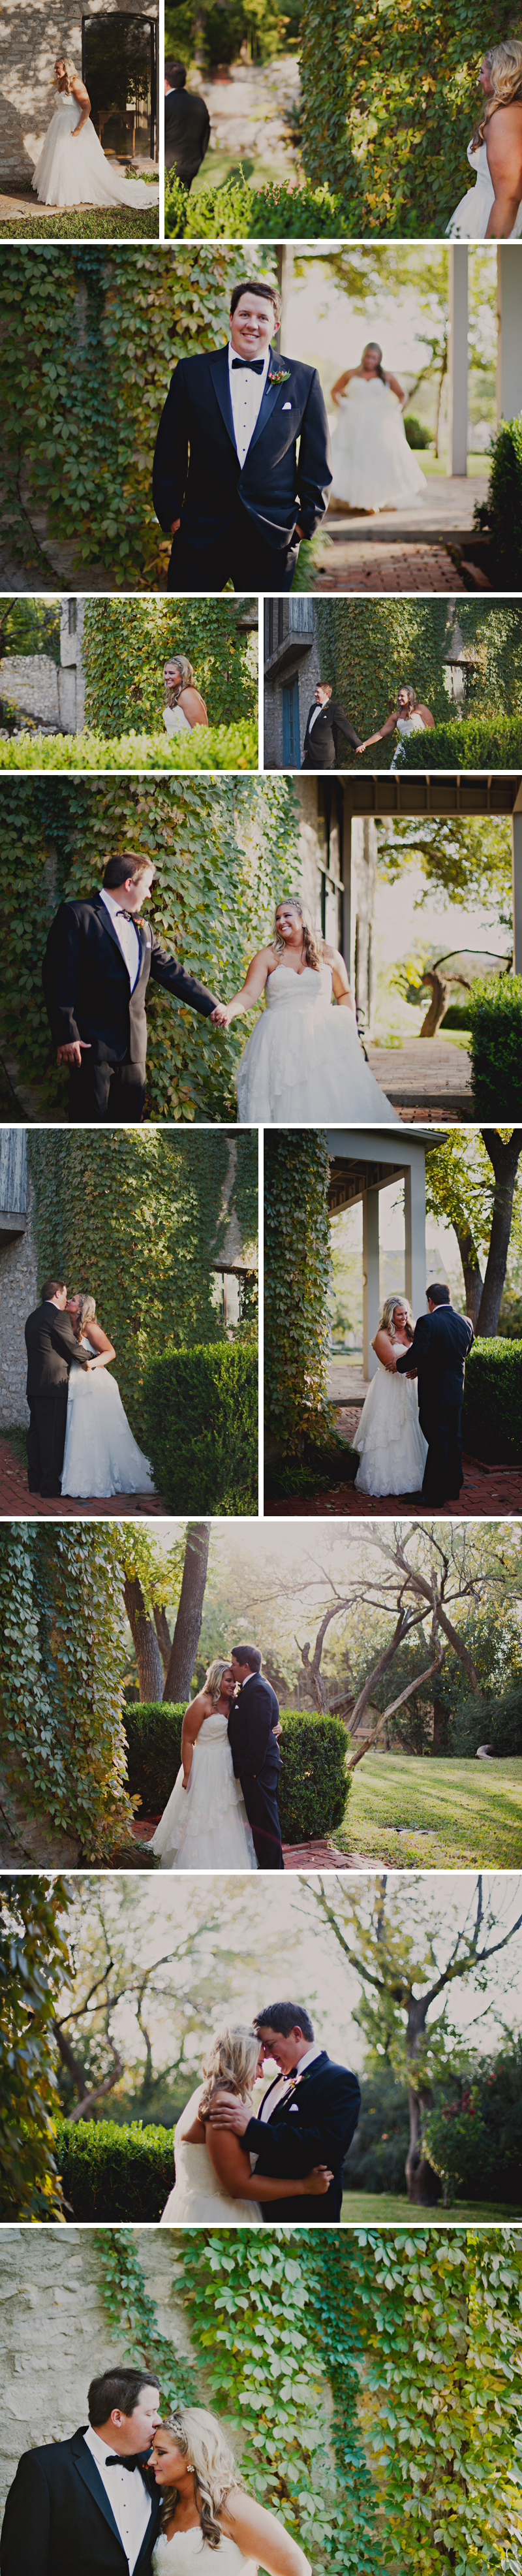 Dallas-Wedding-Photographerc010